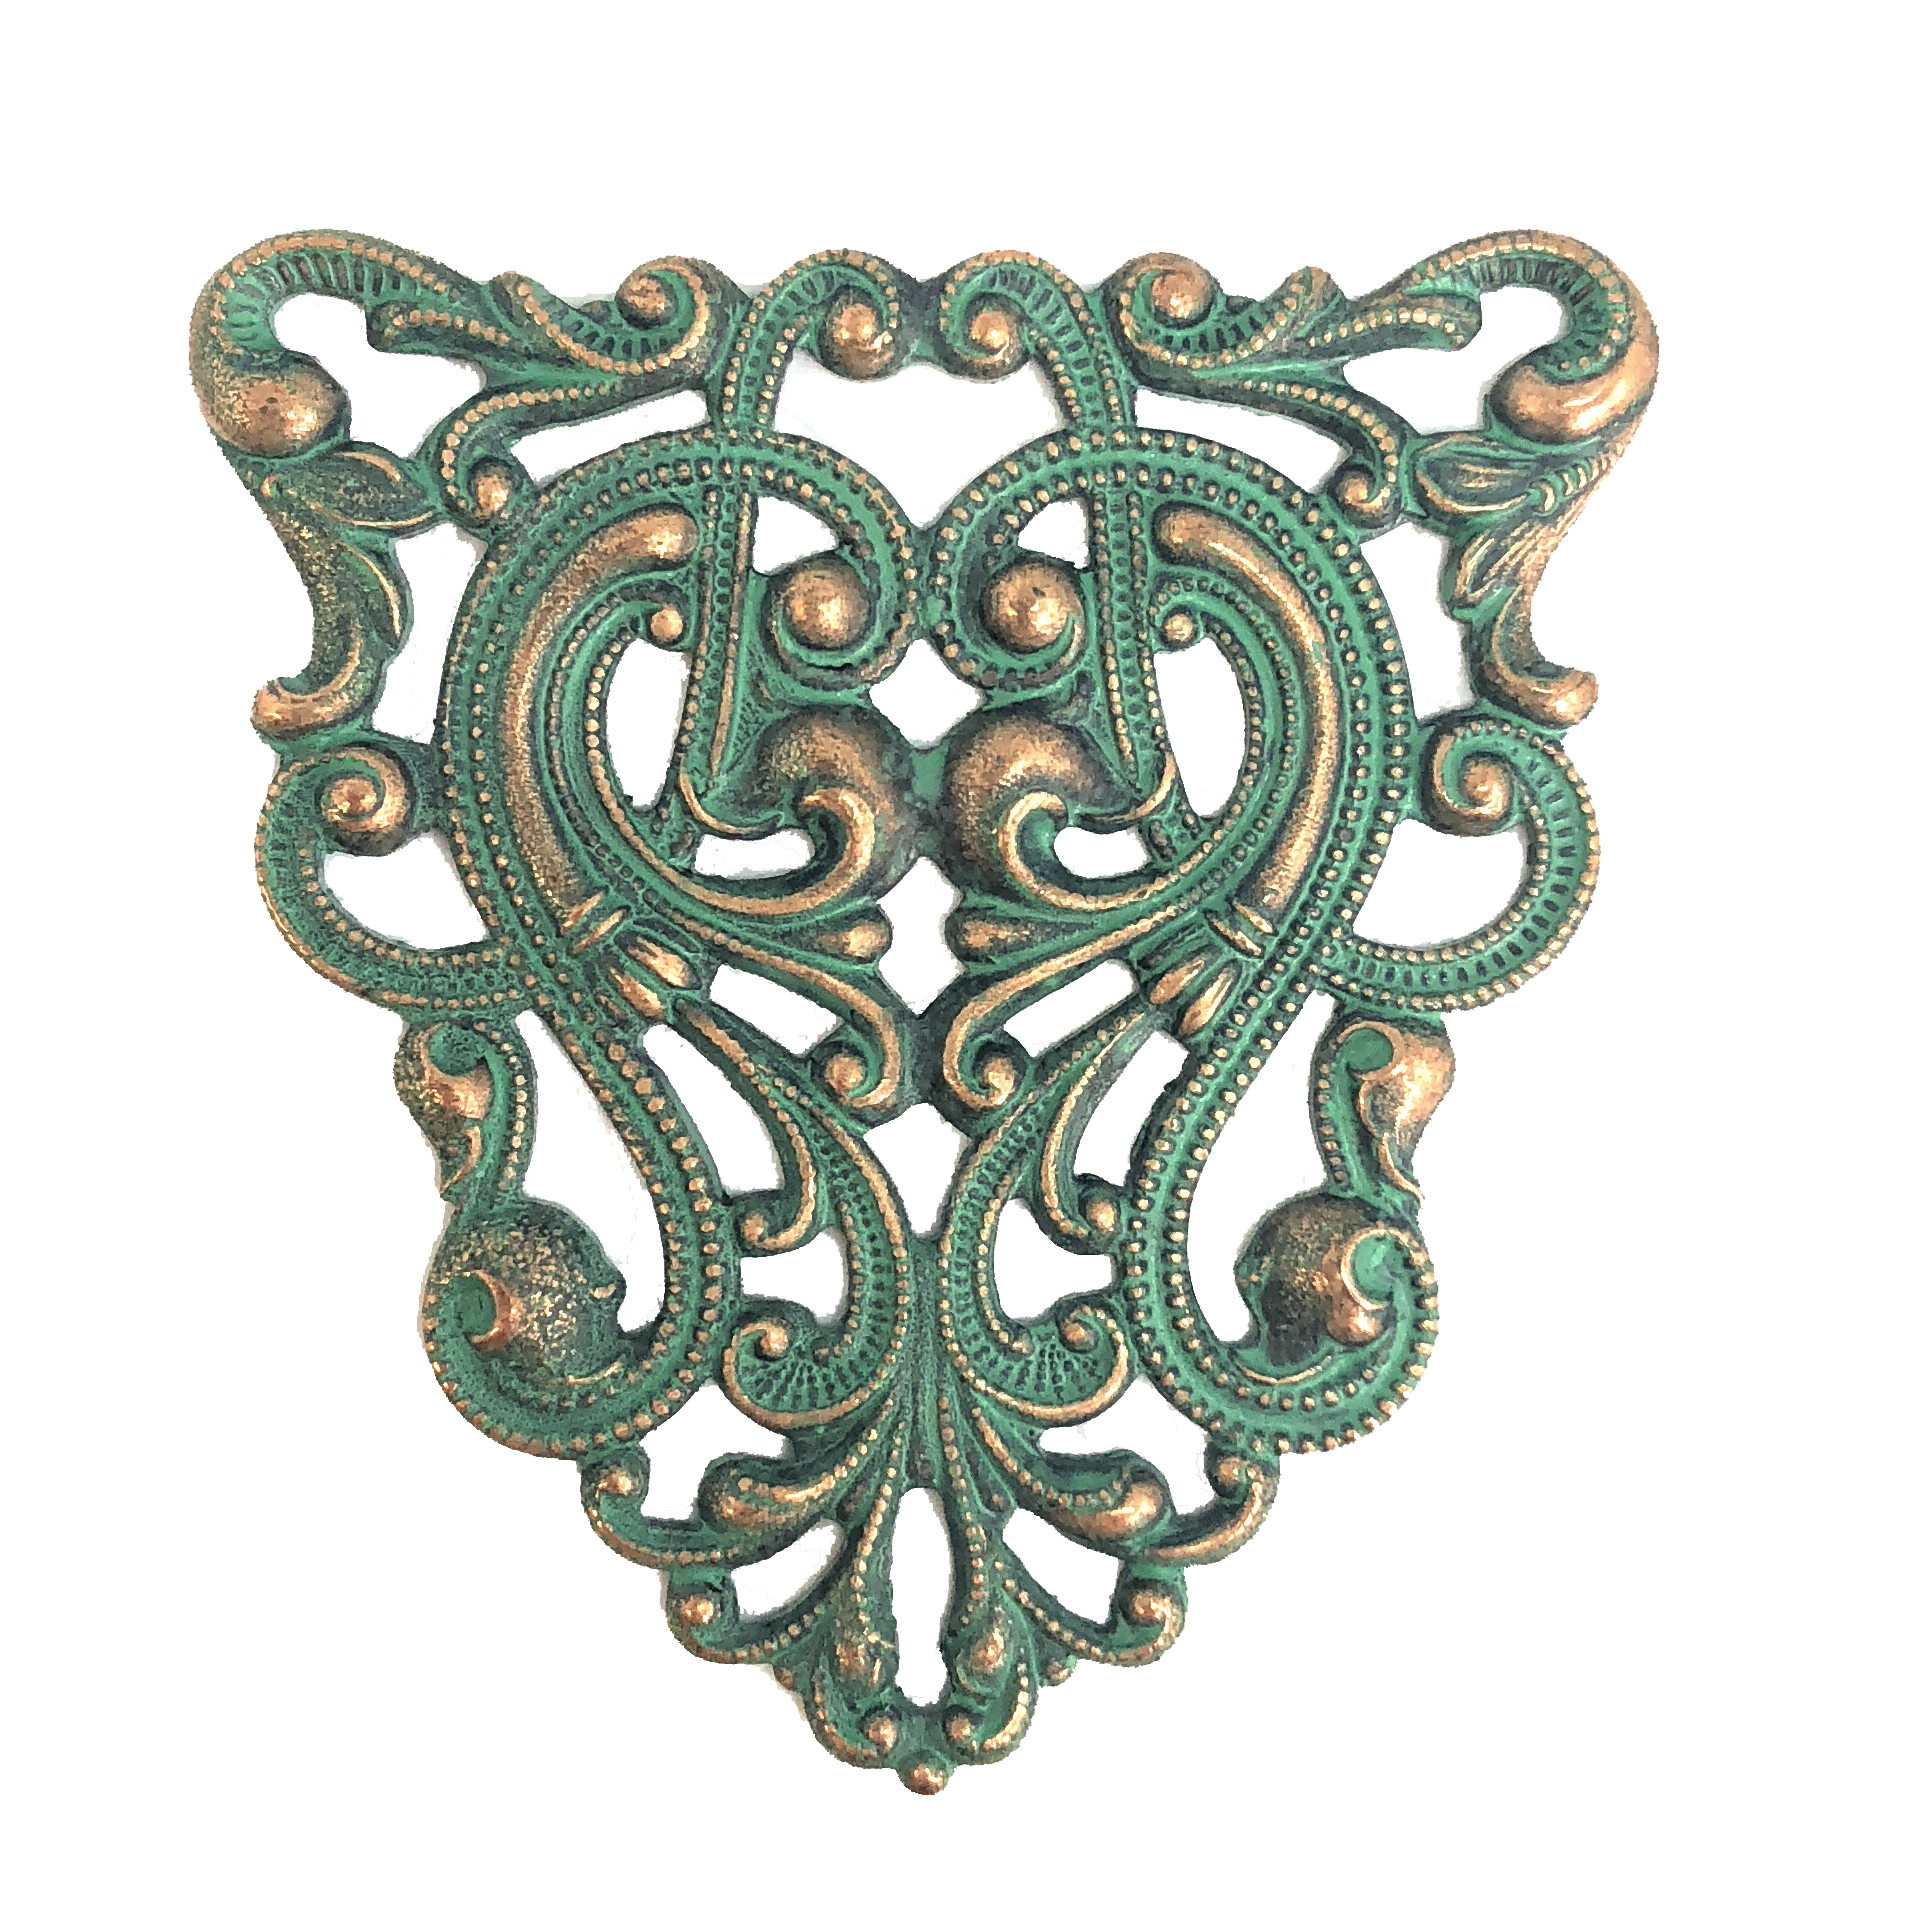 Art nouveau filigree, aqua copper patina, filigree, 40 x 37mm, brass stamping, connector, finding, us made, nickel free, jewelry making, jewelry supplies, vintage supplies, plated brass, brass filigree, design, jewelry findings, 08222